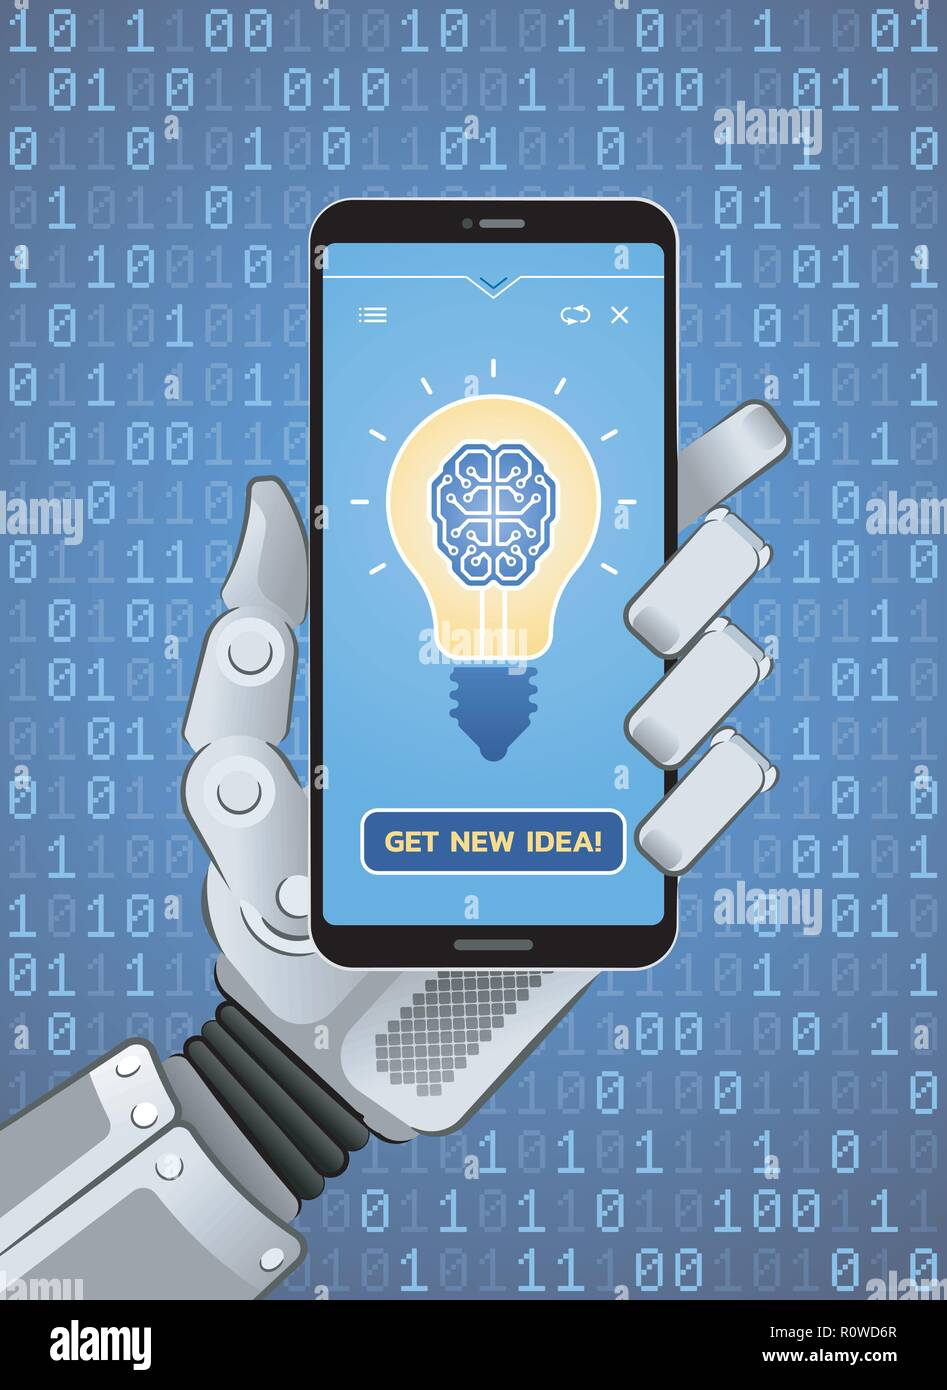 Get New Idea by Artificial Intelligence - Stock Image